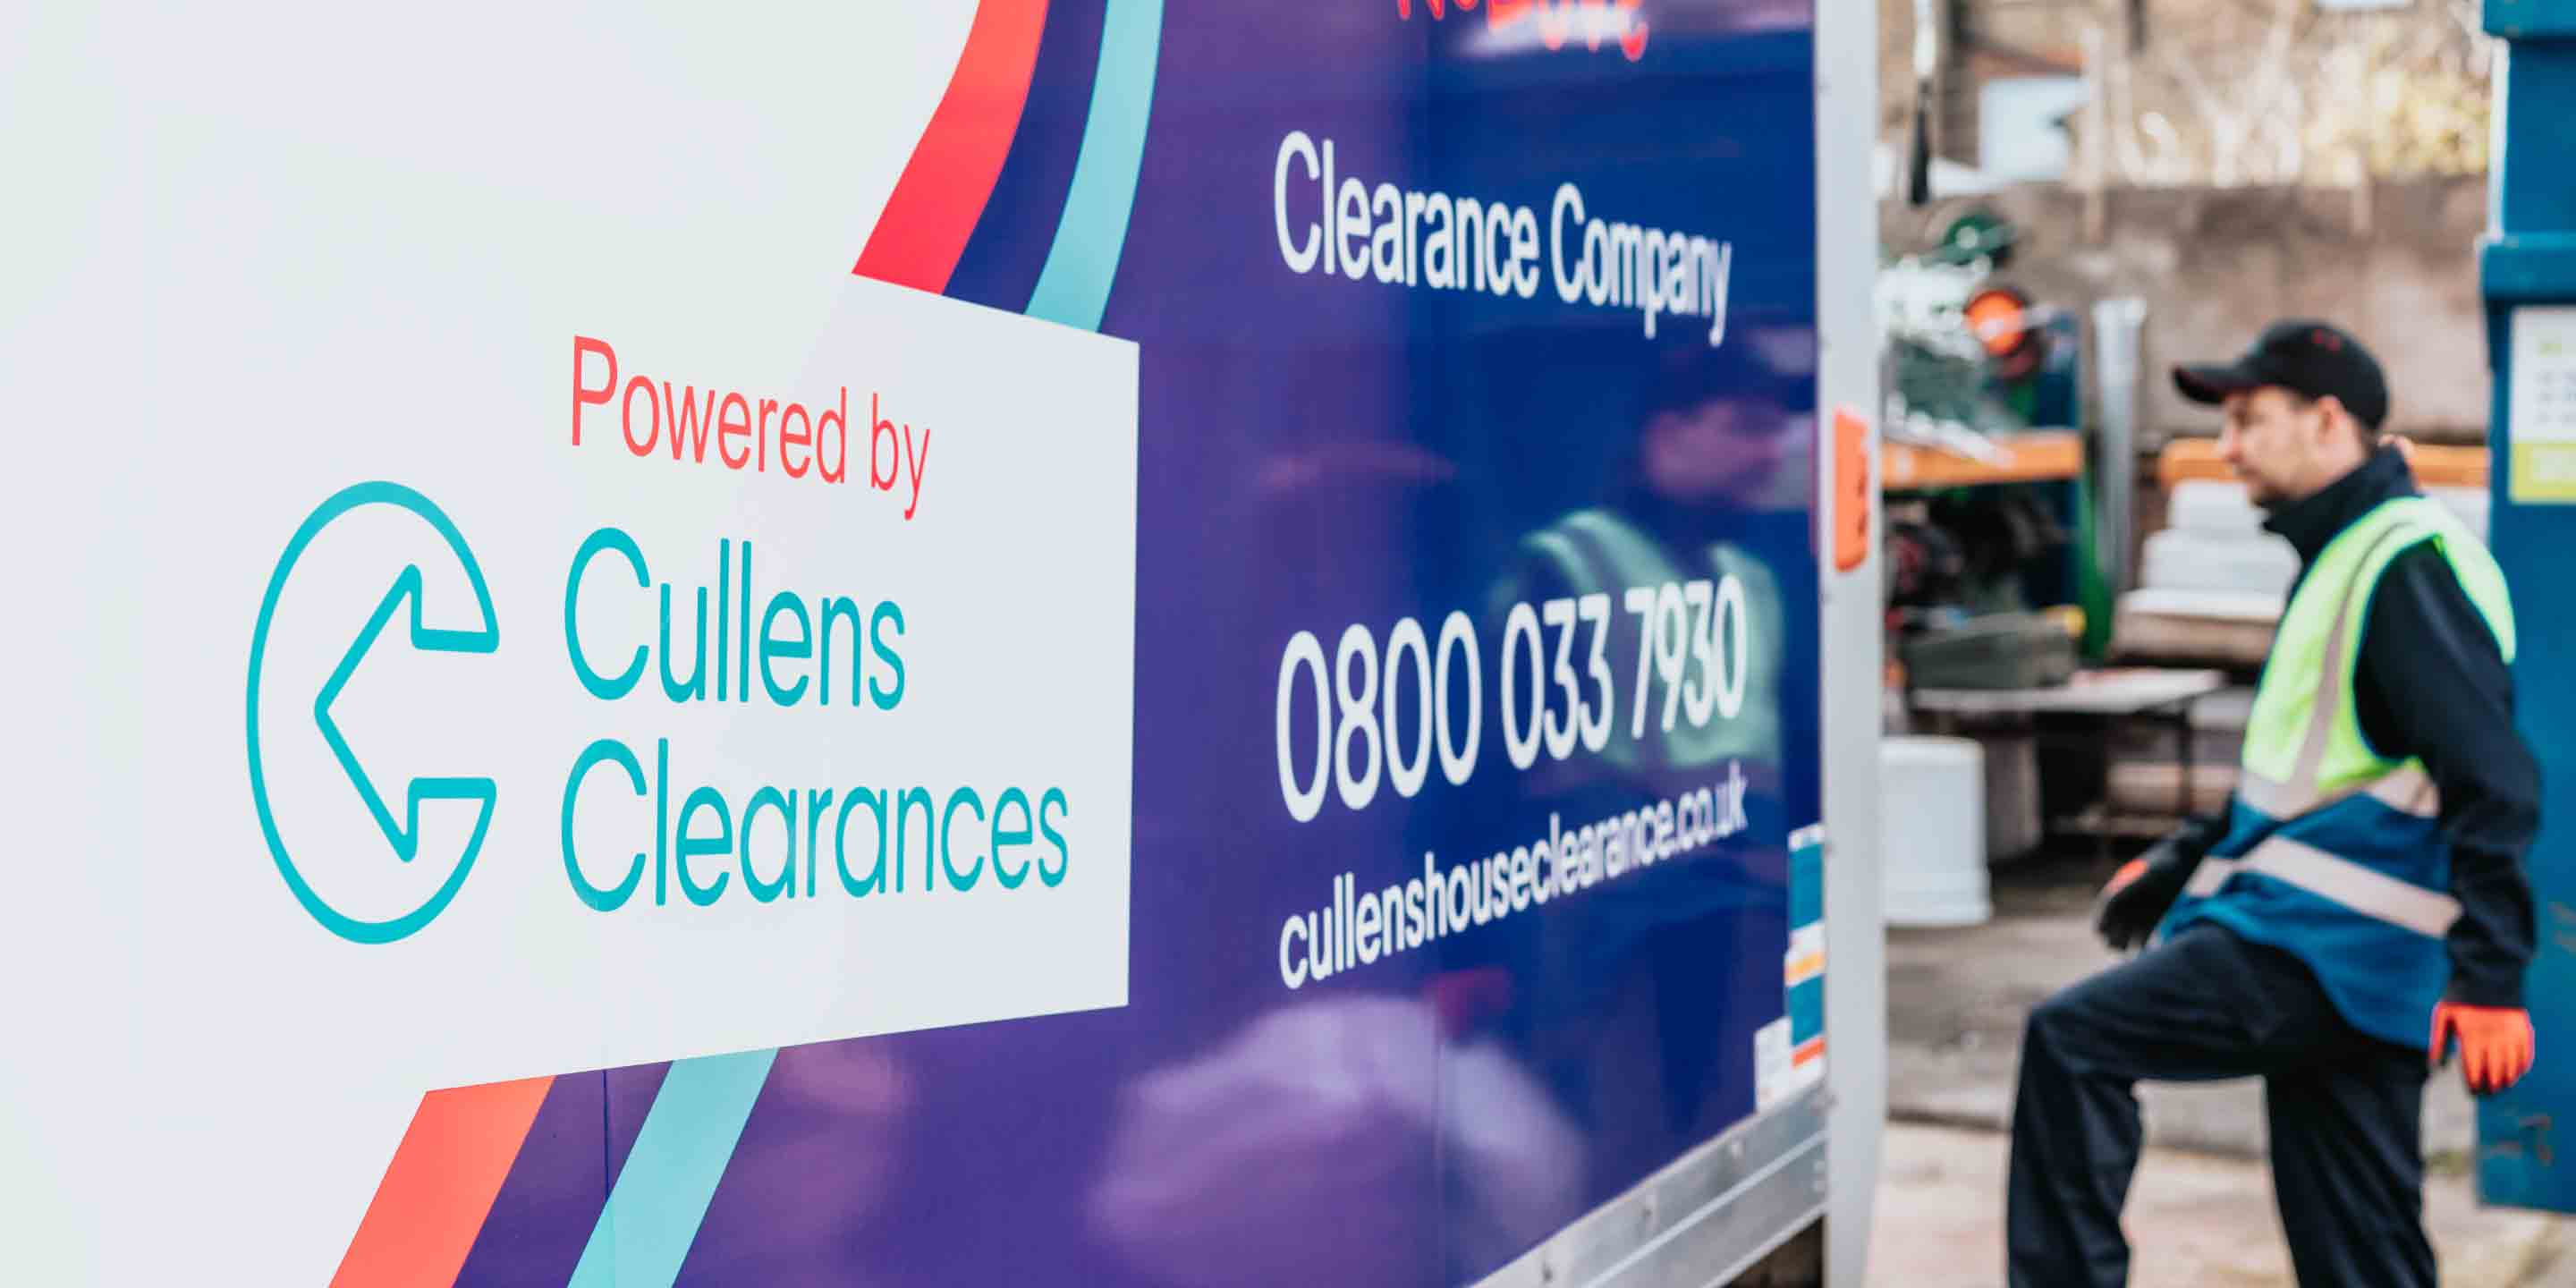 Caterham Office Clearance Company